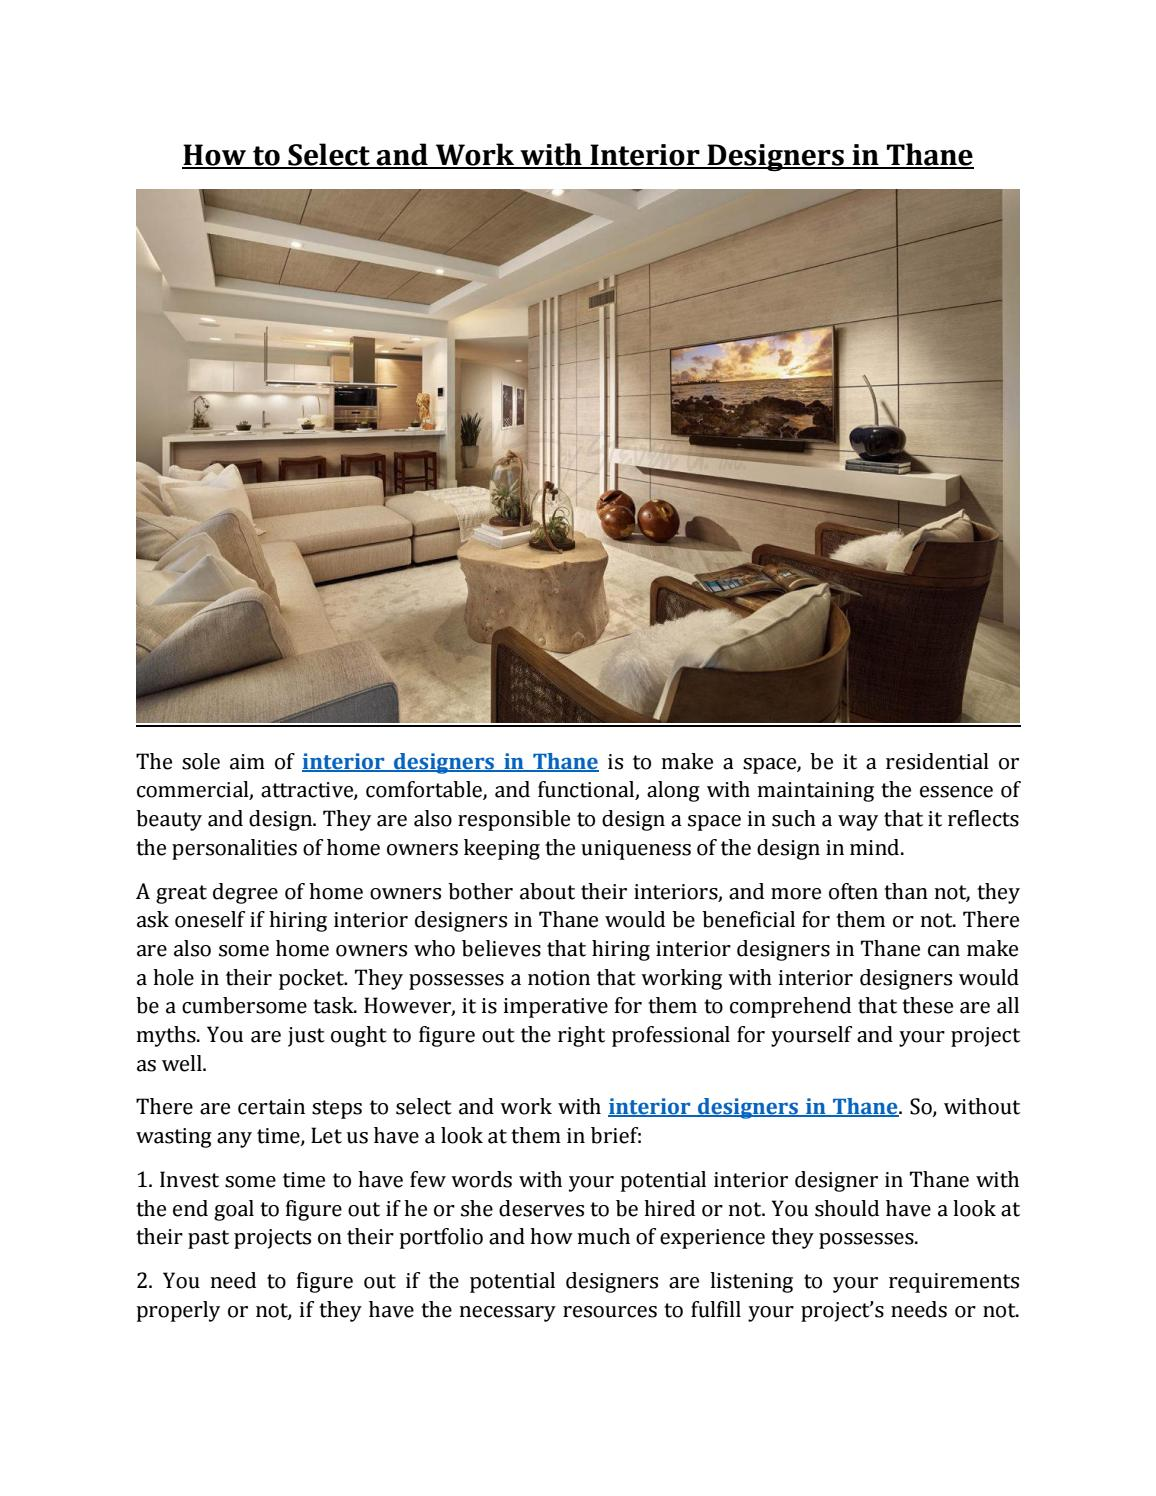 How To Select And Work With Interior Designers In Thane By Home2decor Issuu